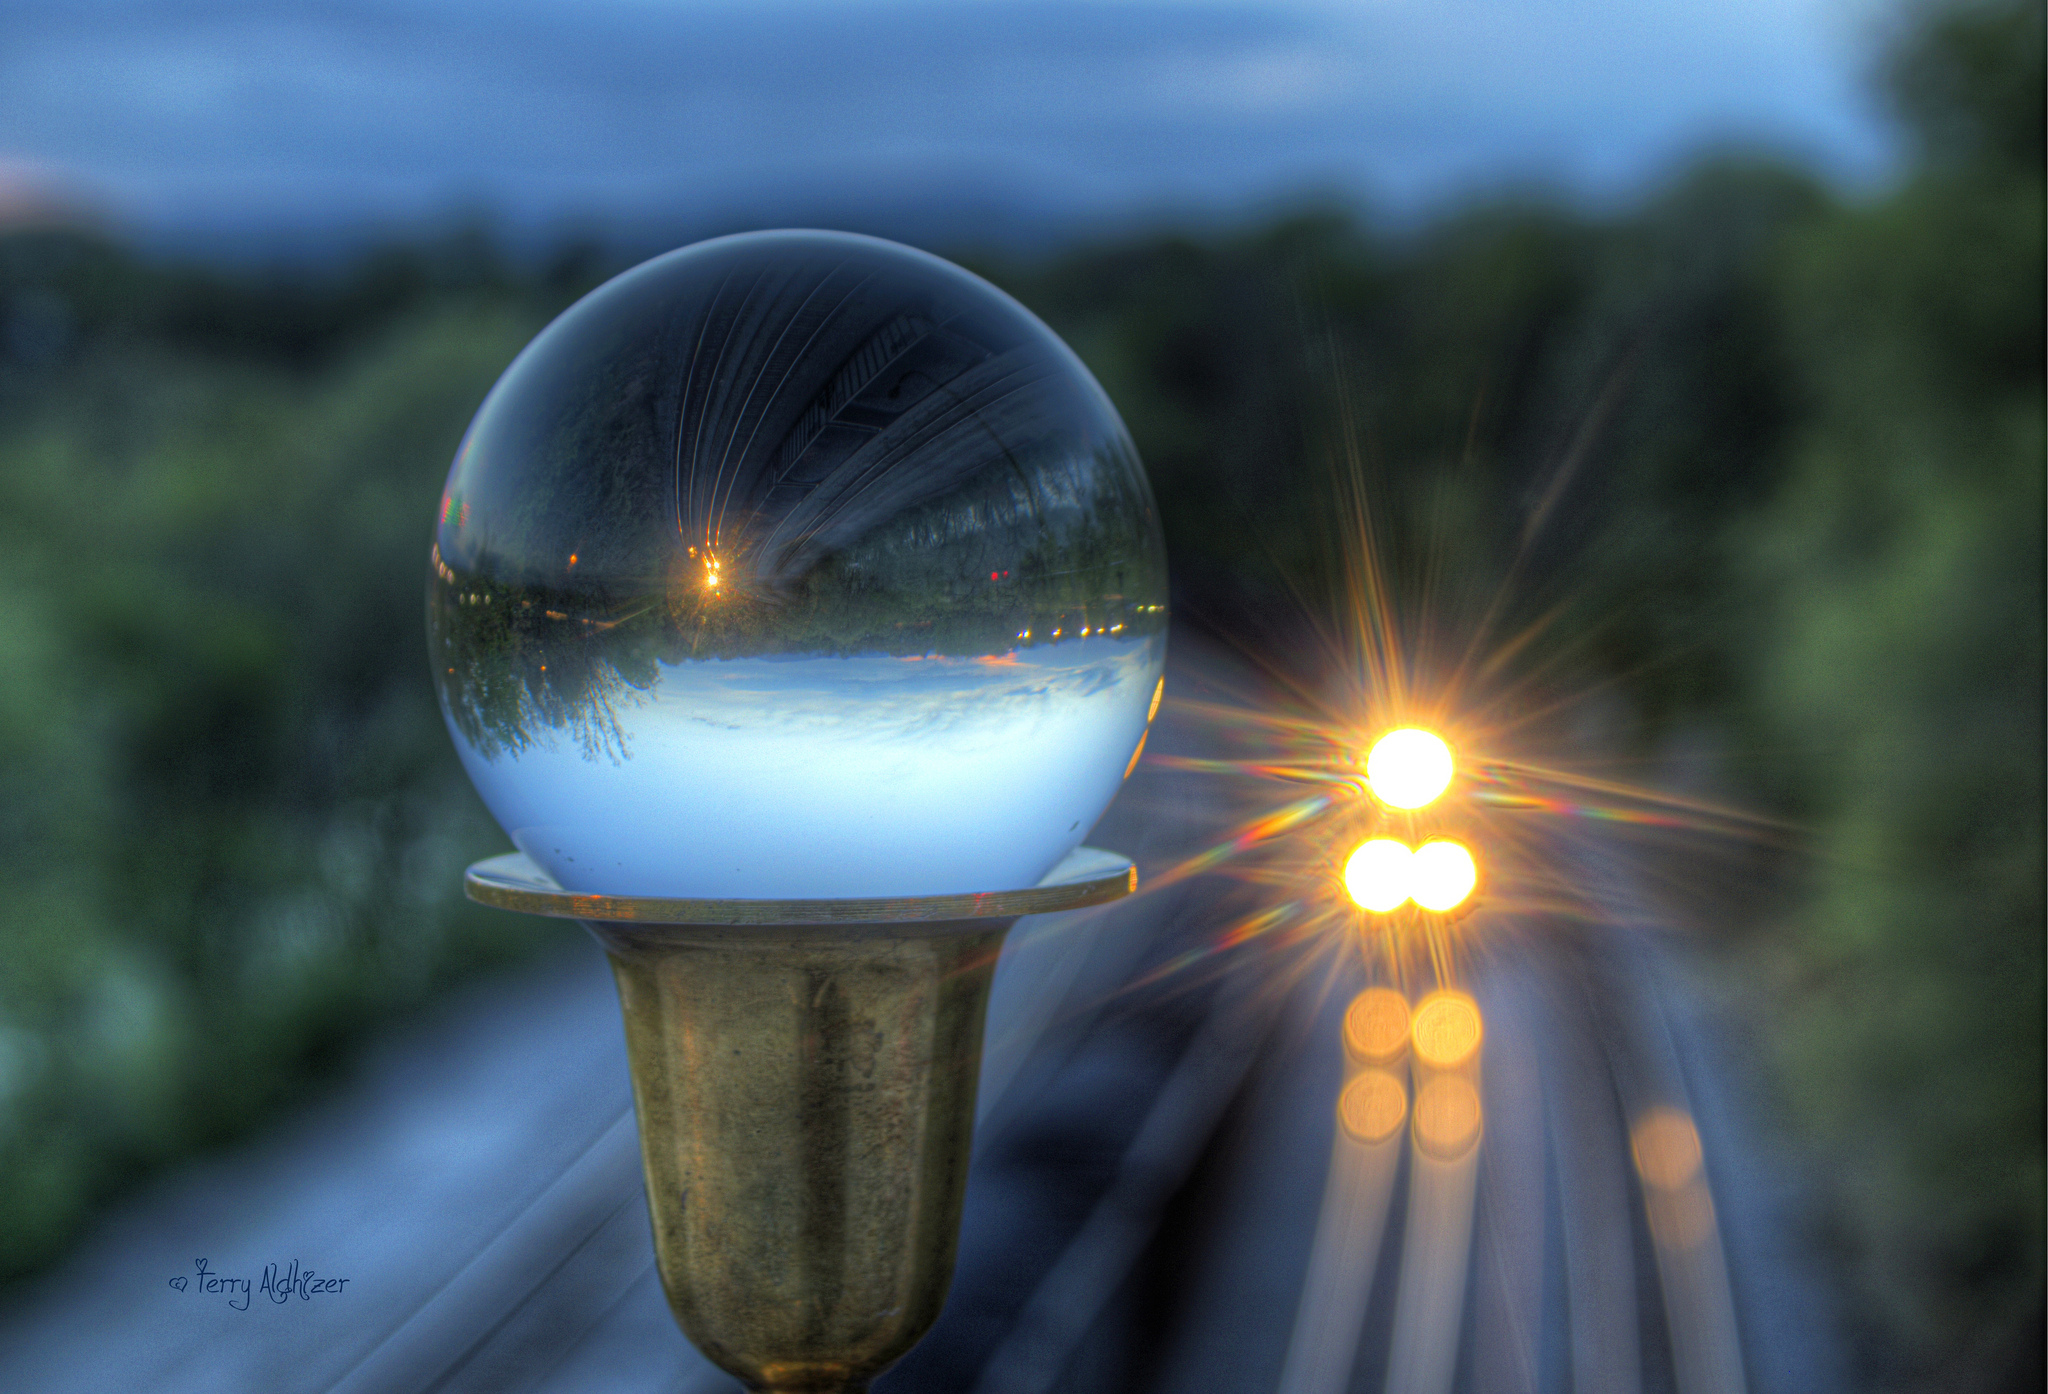 ball glass train reflection glare wallpaper 2048x1394 165805 wallpaperup - Glass Reflection